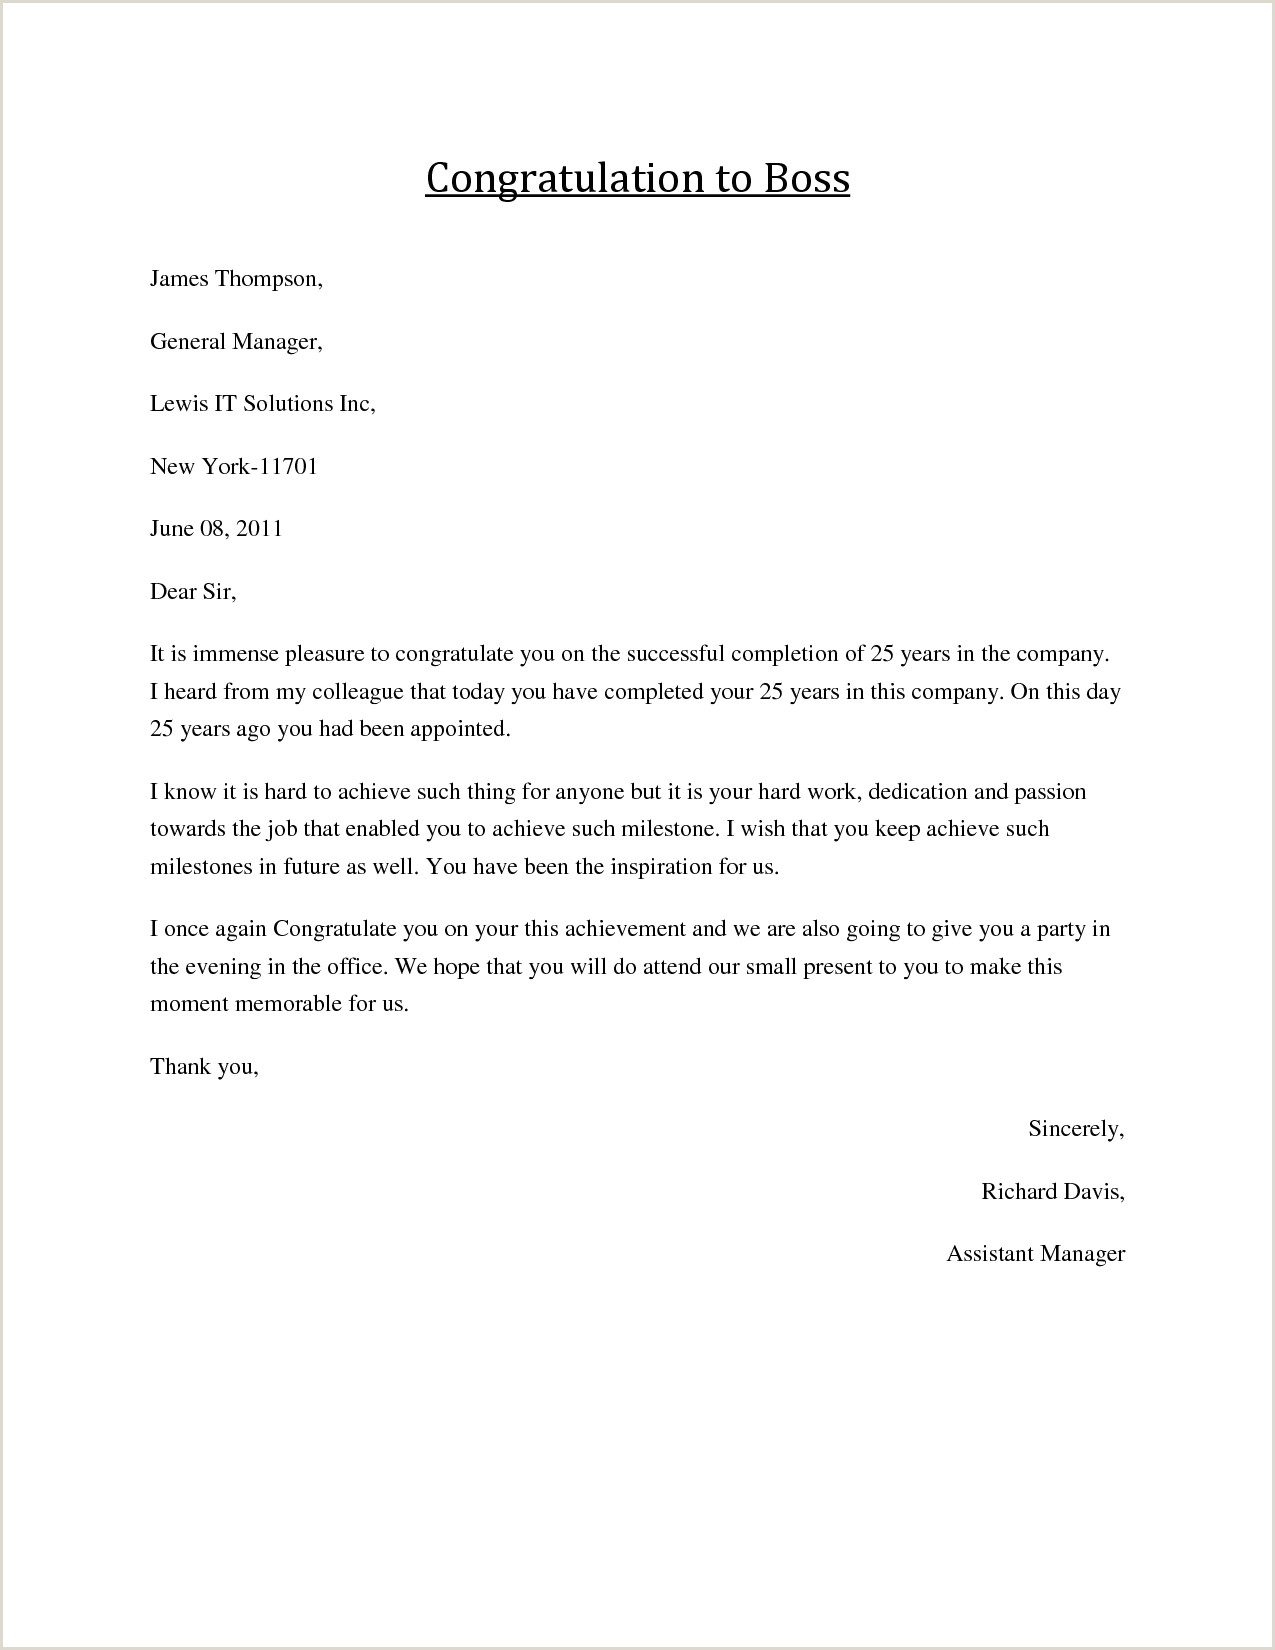 Congratulatory Letter for Award Congratulations Letter to Boss Job Congratulations formal